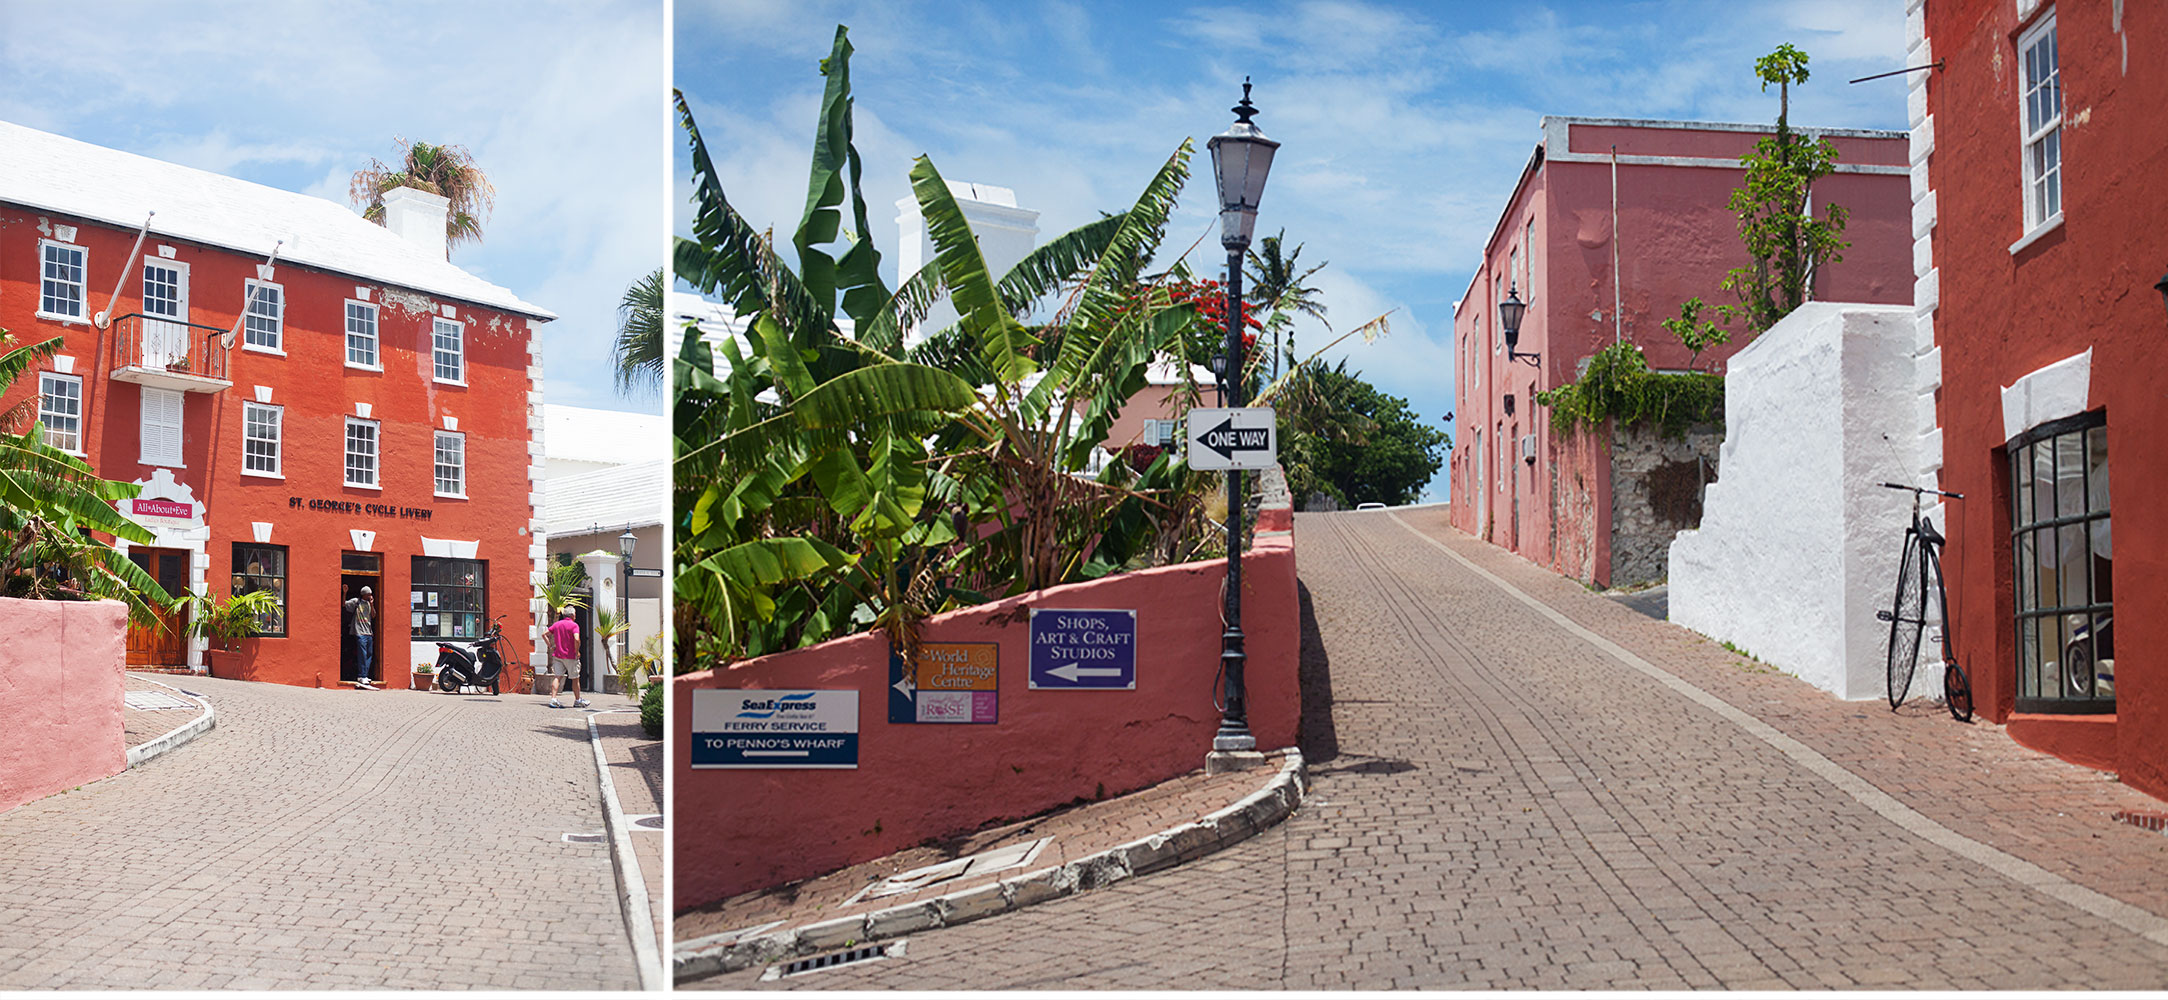 Everything in Bermuda is worth taking a picture of....This is St. George's, the eastern tip of the country.